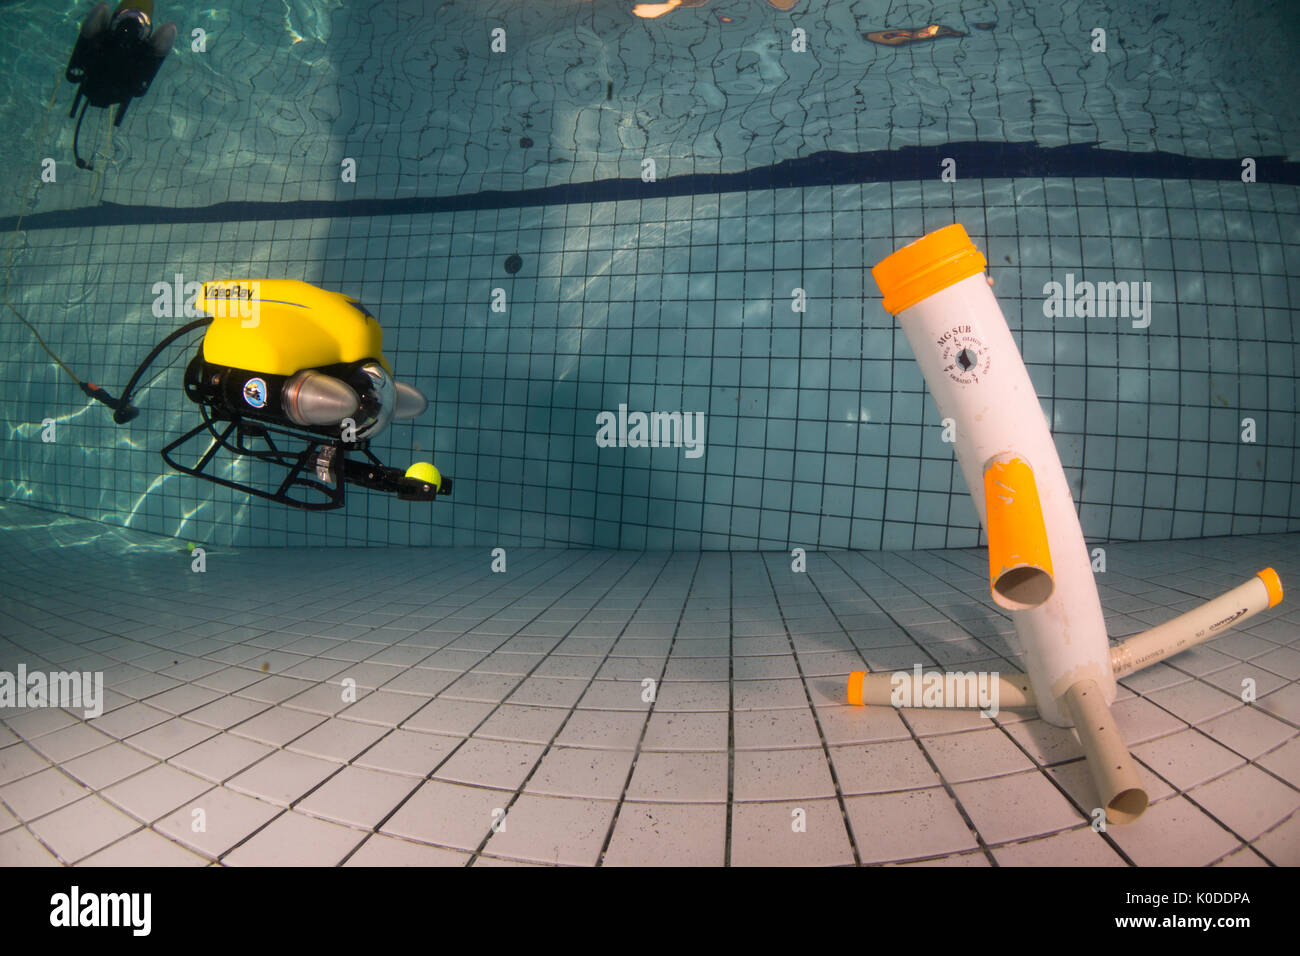 Video Ray ROV training underwater at swimming pool. Stock Photo